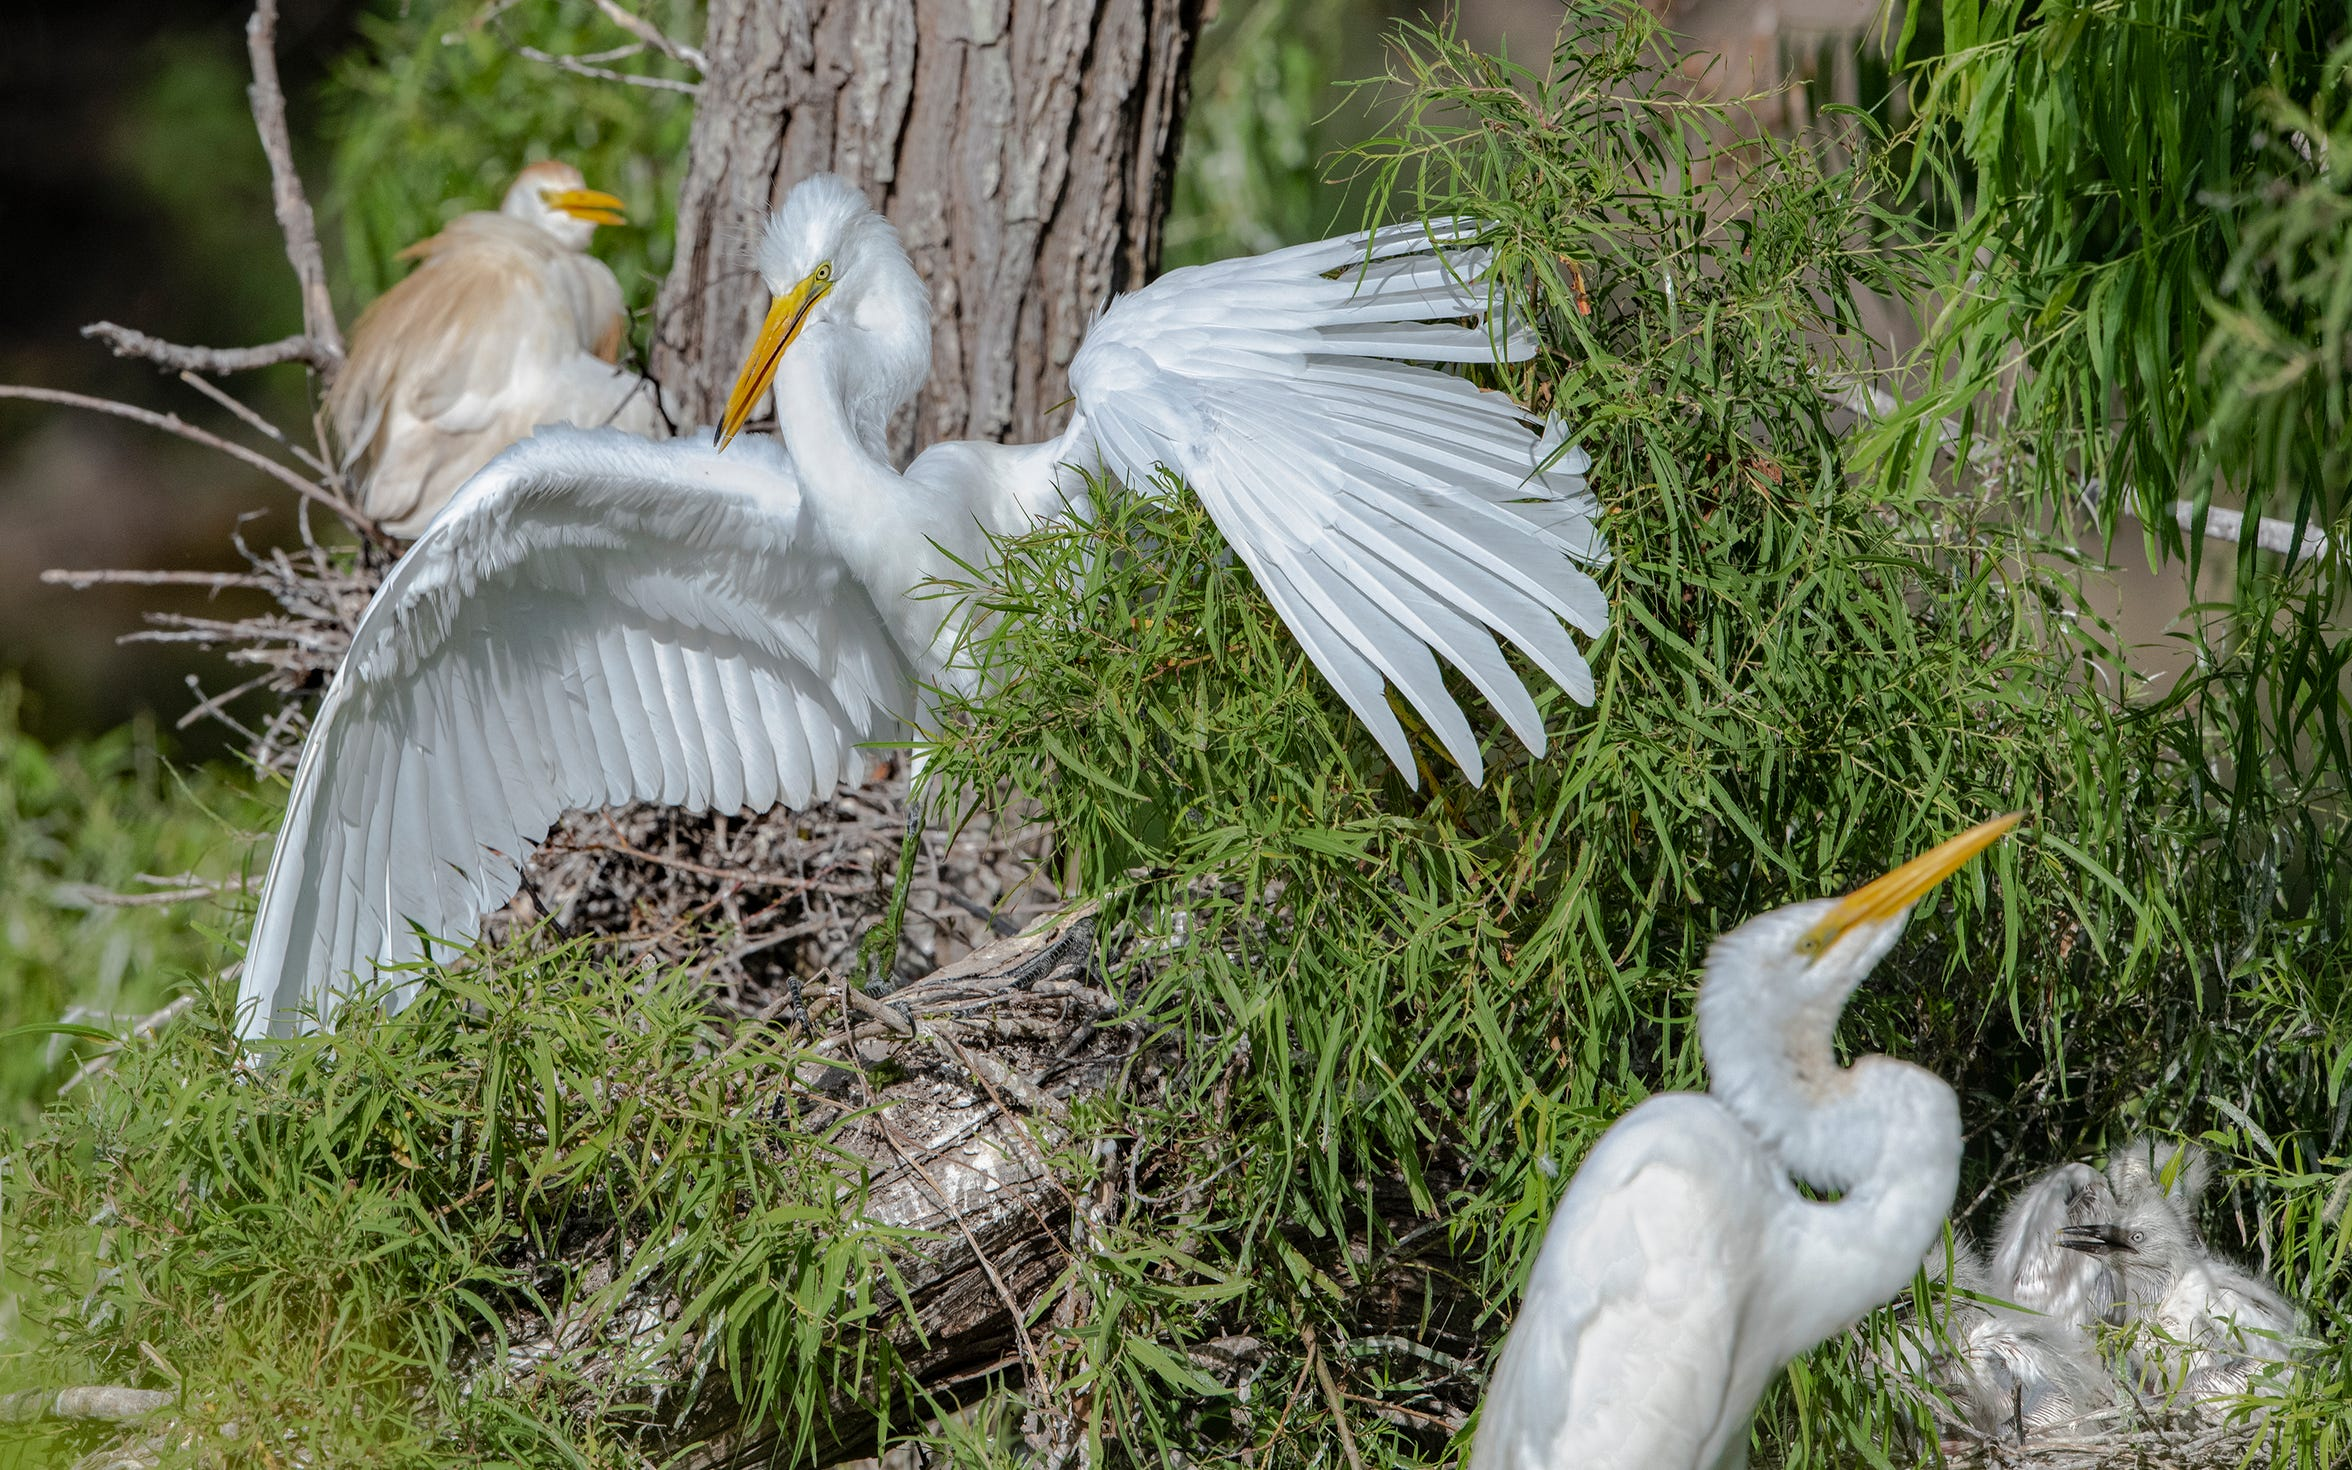 Many of the Coastal Bend's colonial waterbirds nested successfully in the spring after Harvey, thanks, in part, to rookery enhancements by the Coastal Bend Bays & Estuaries Program.